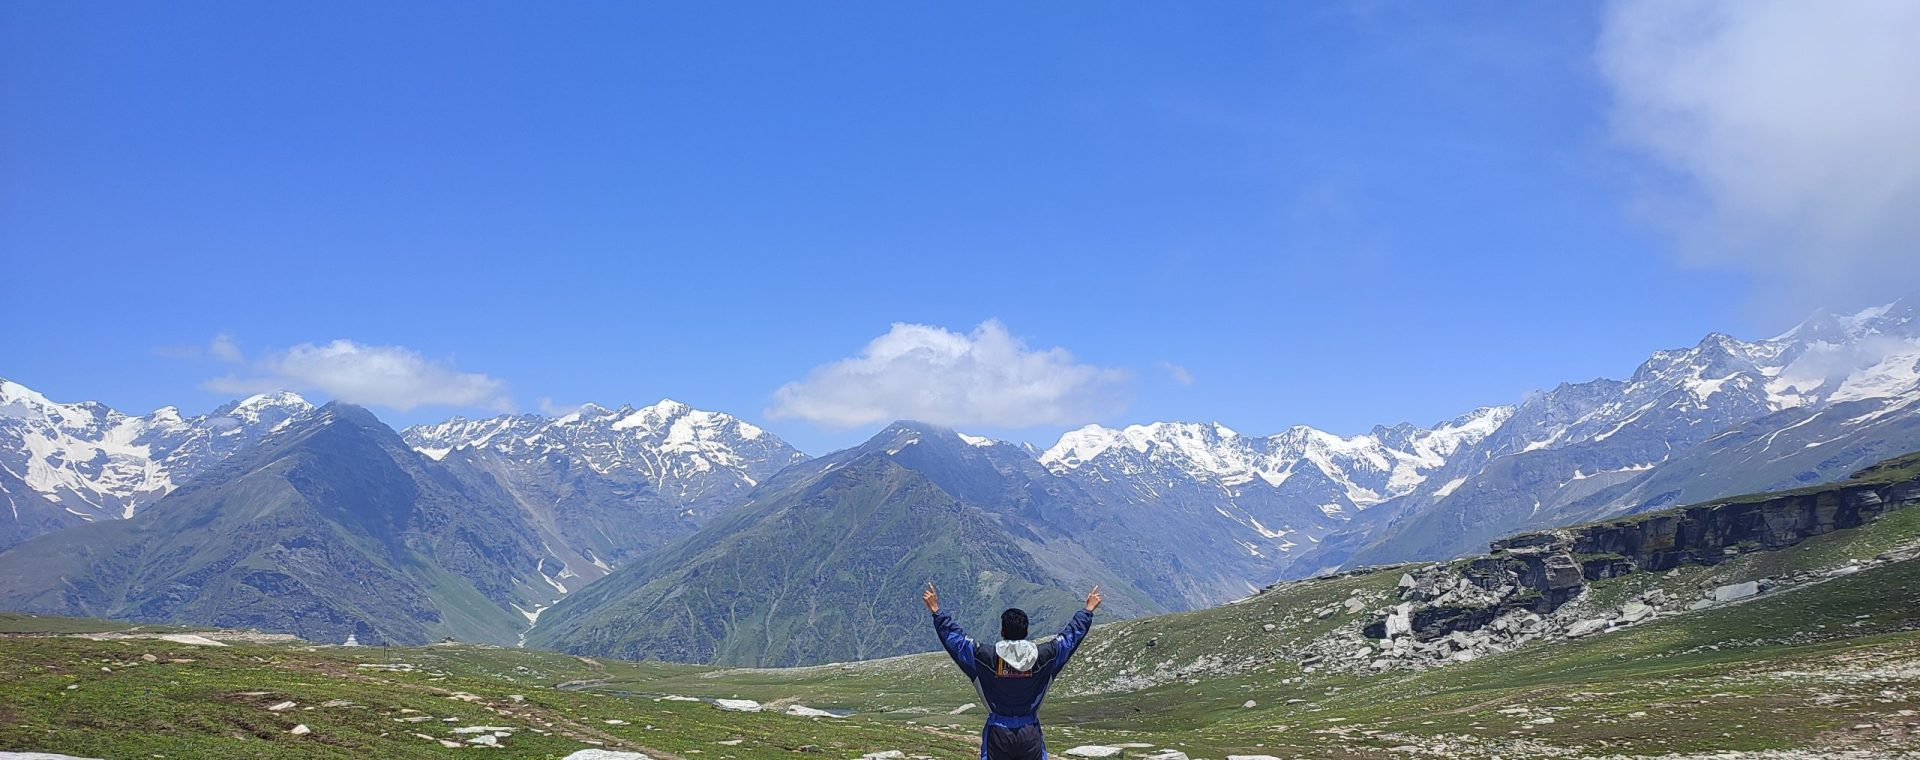 How to reach Manali